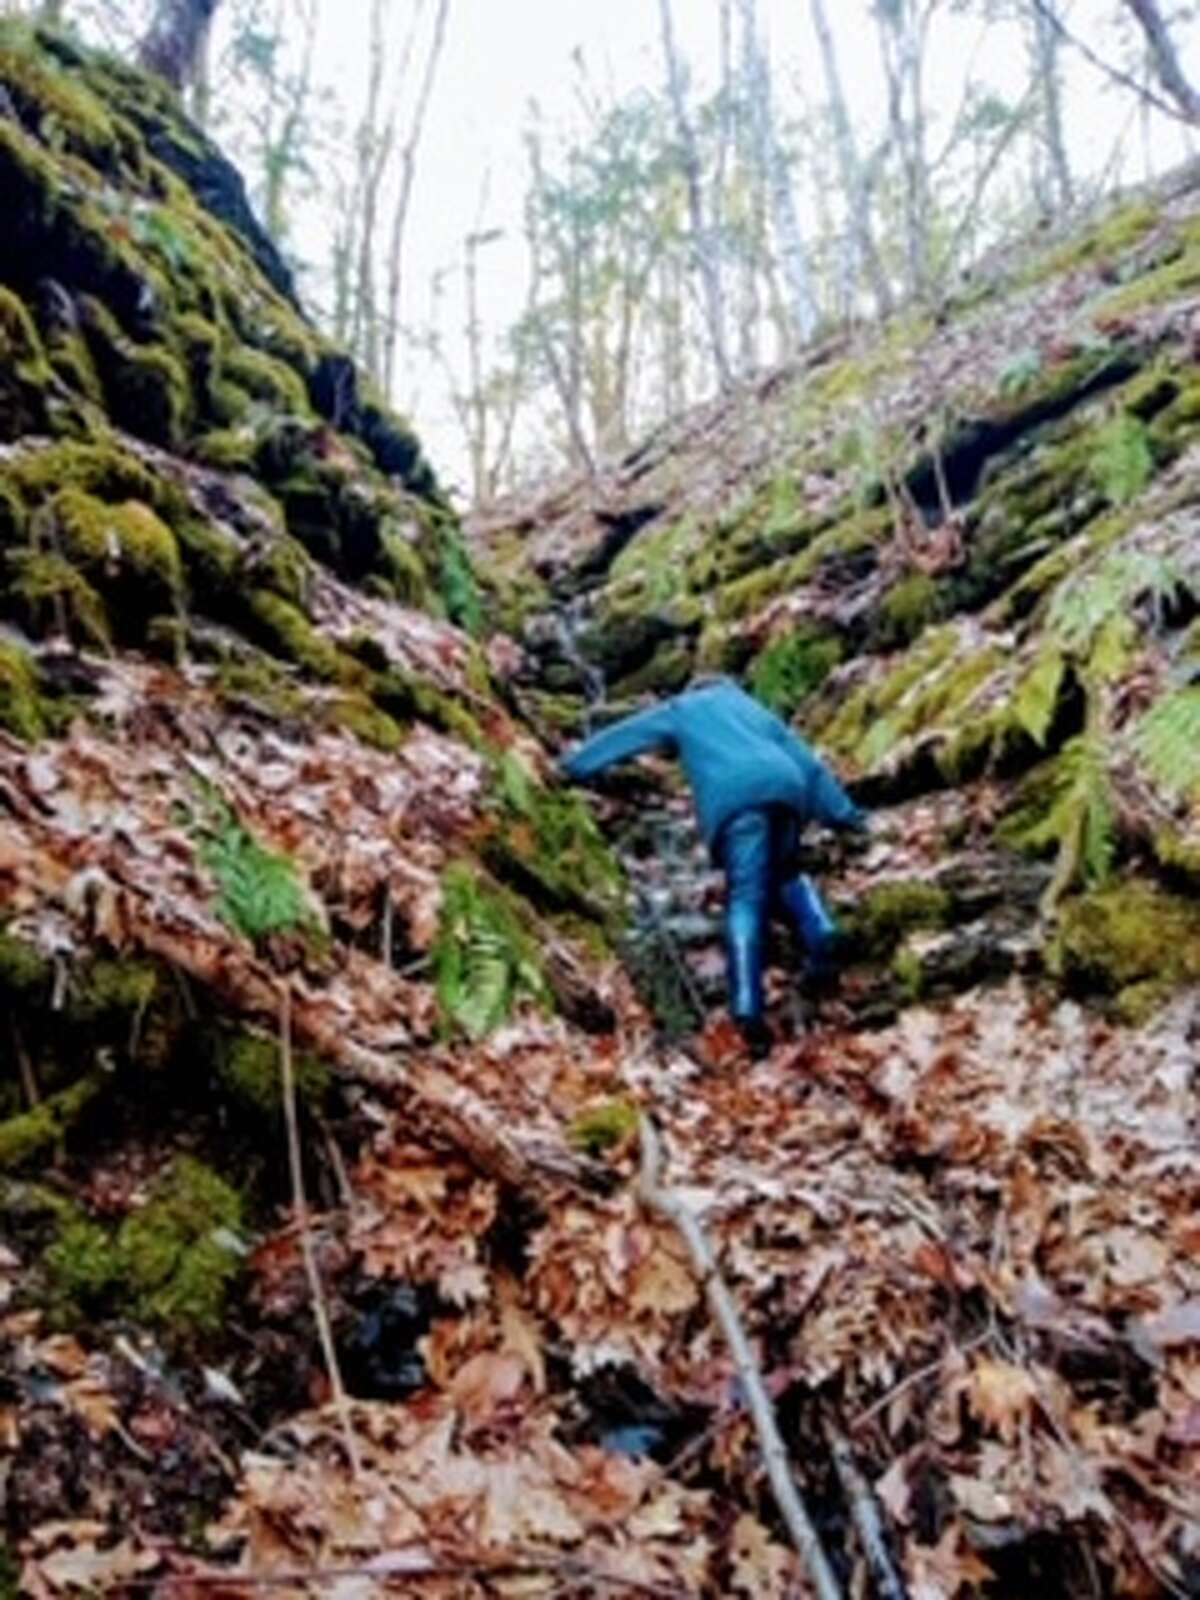 Quarantine adventures with Nicky Yetto and Lukey, pictured climbing during a hike.